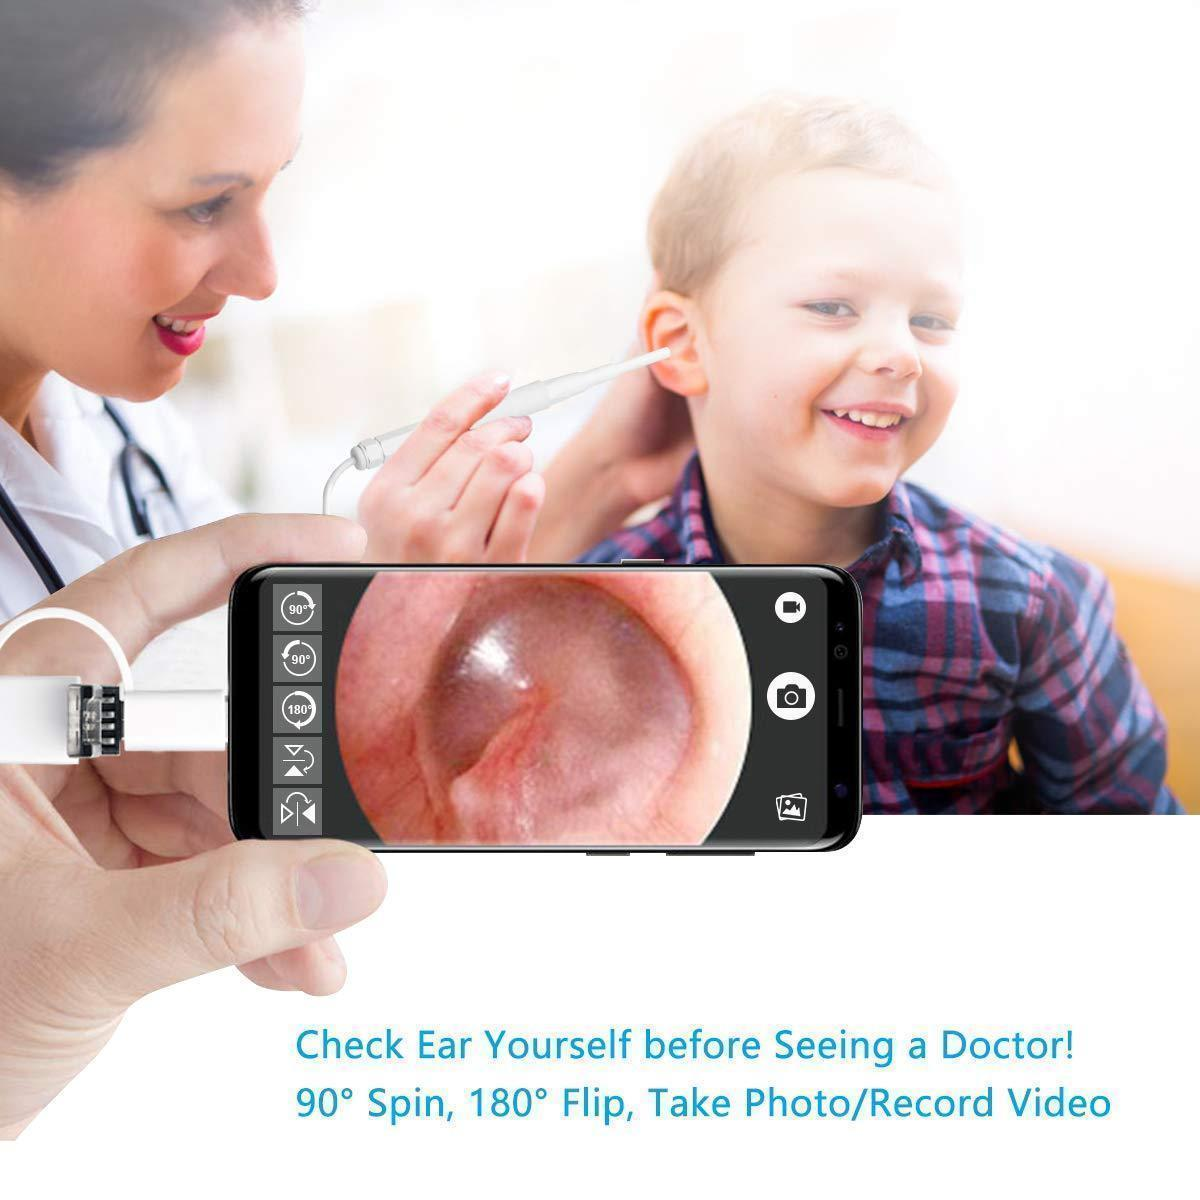 3in1 Earscope Cleaner HD - planetshopper.net